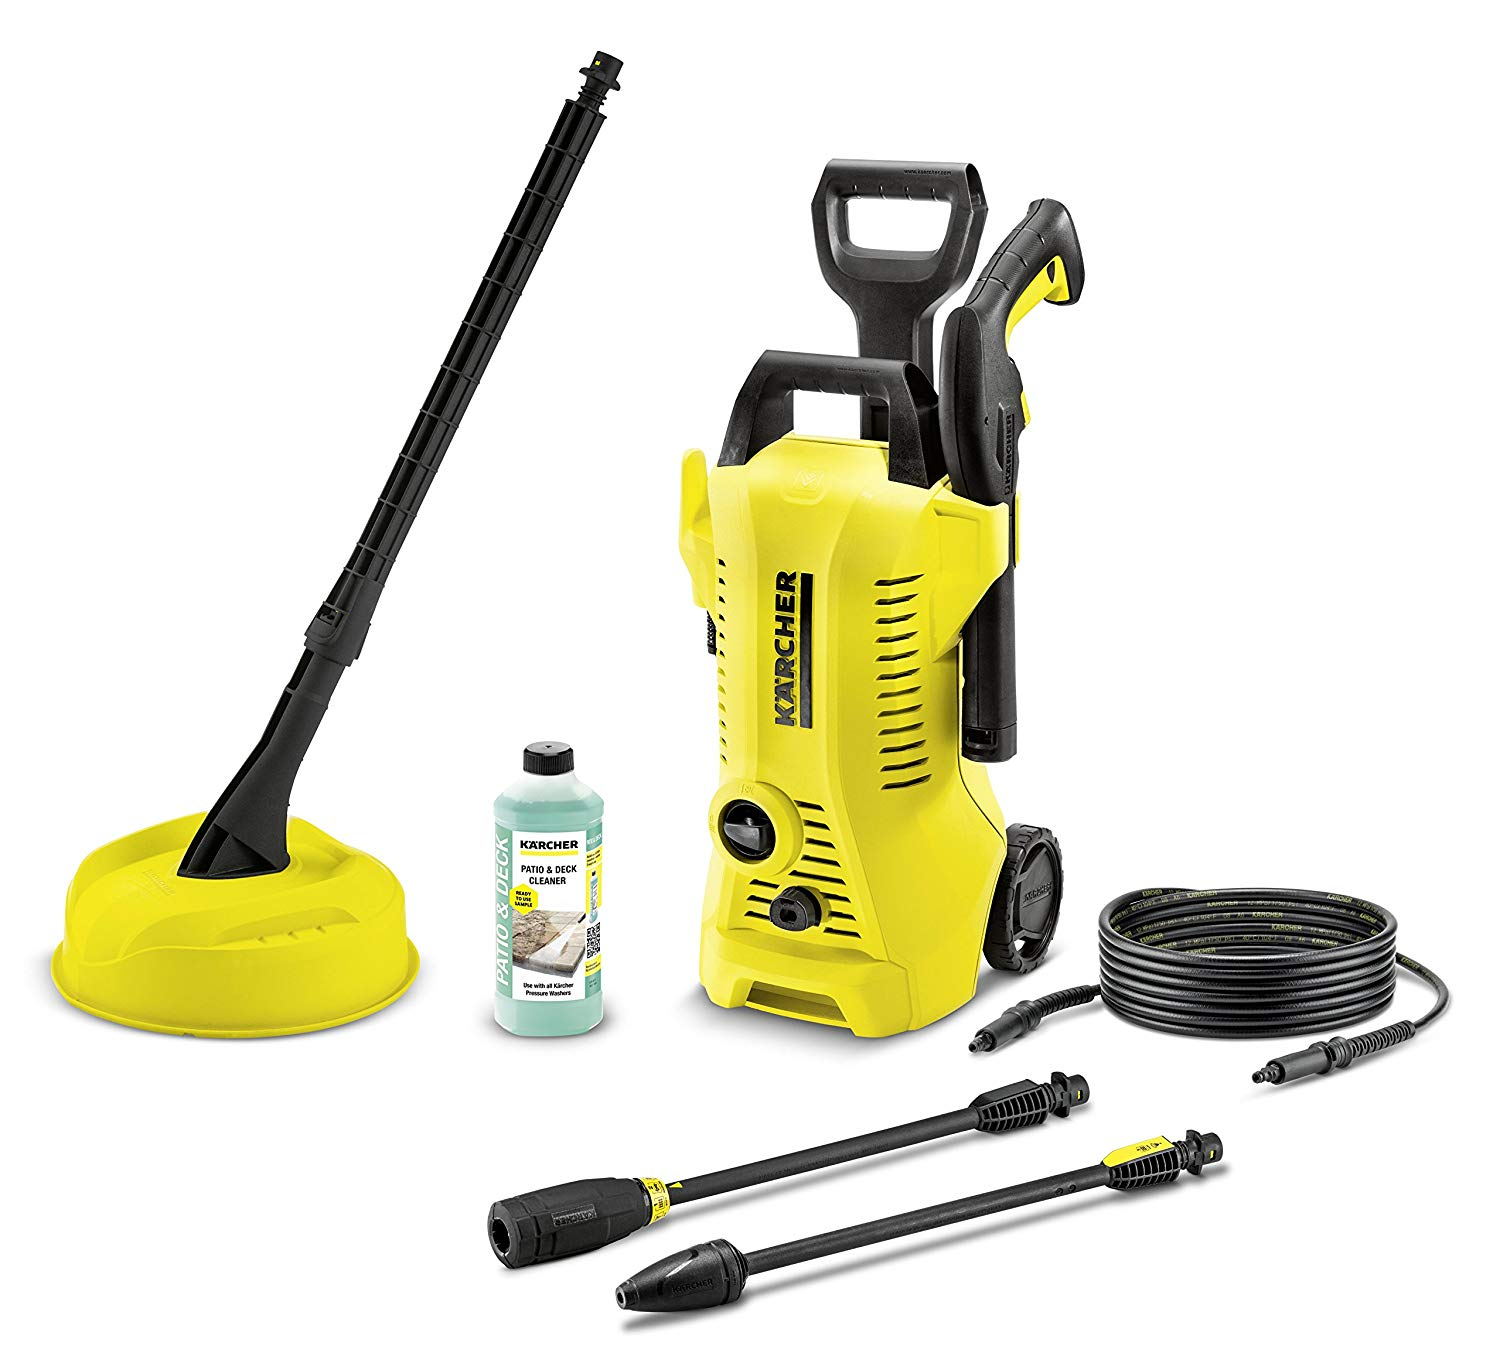 Karcher K2 compact car & home pressure washer bundle — 1400w, 110 bar